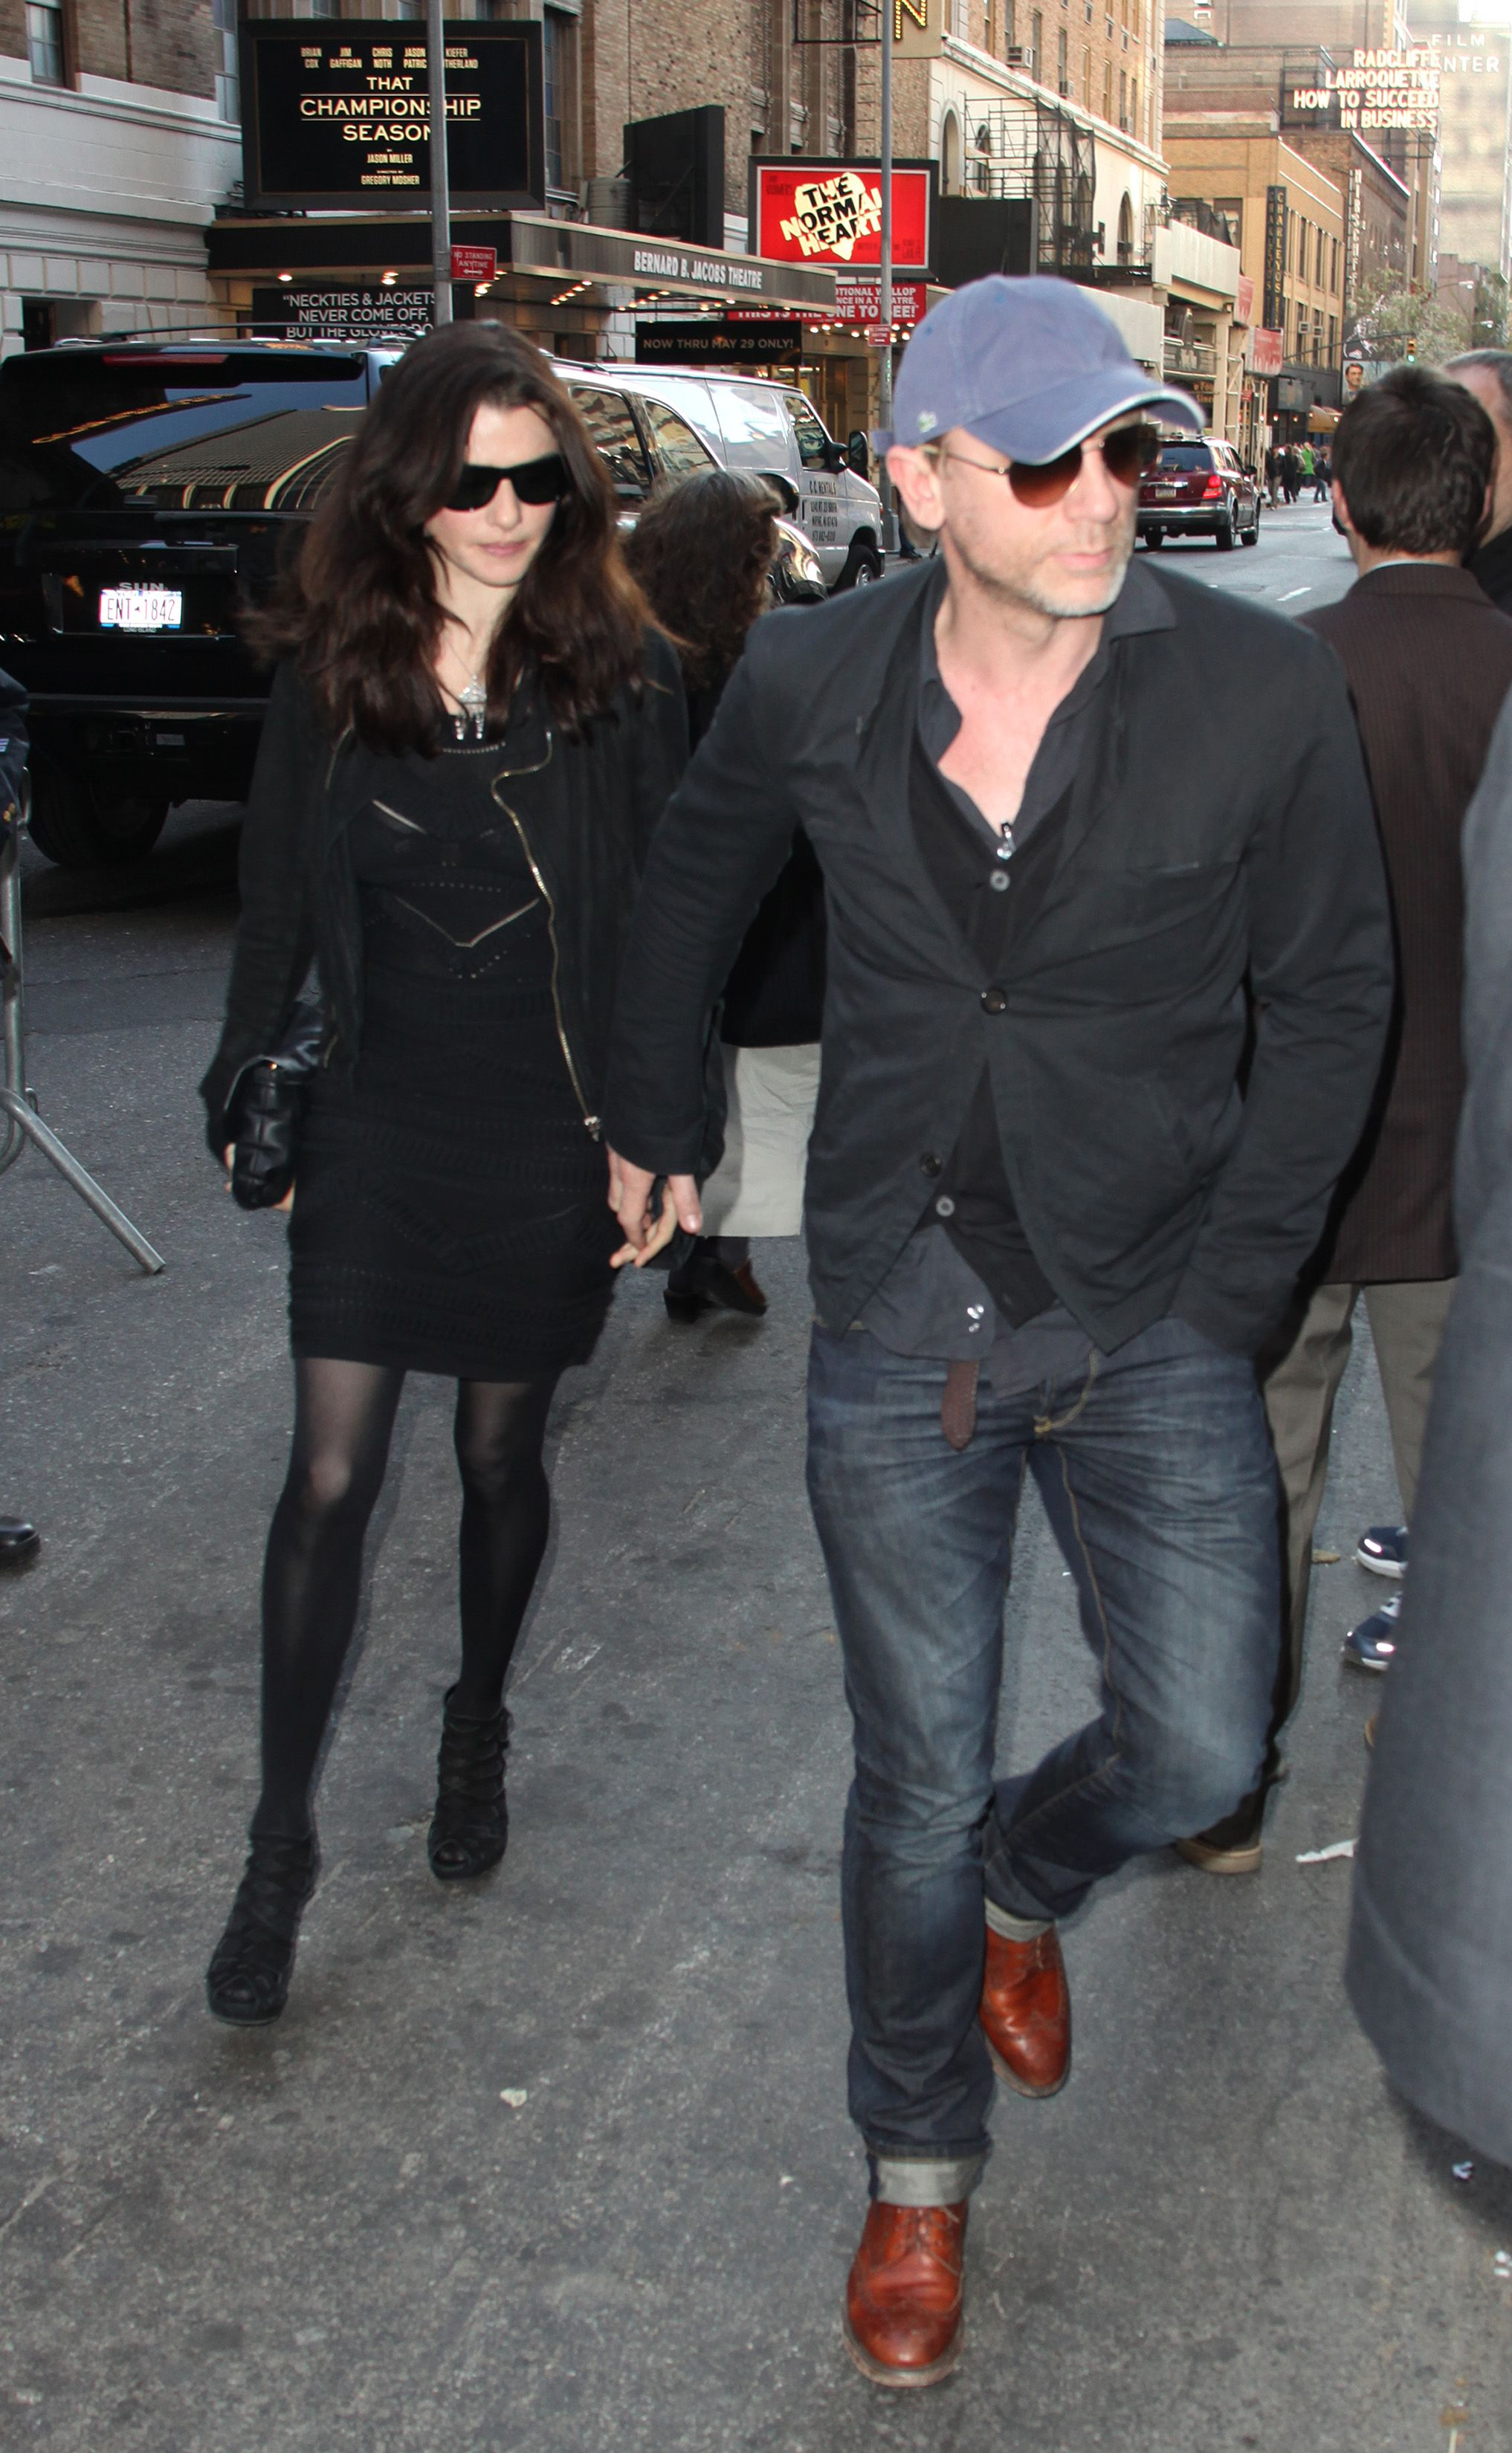 Daniel Craig and Rachel Weisz photographed in New York's theater district in 2011. Craig is expected to start filming the next Bond film, which is expected to be his last, in the coming months.